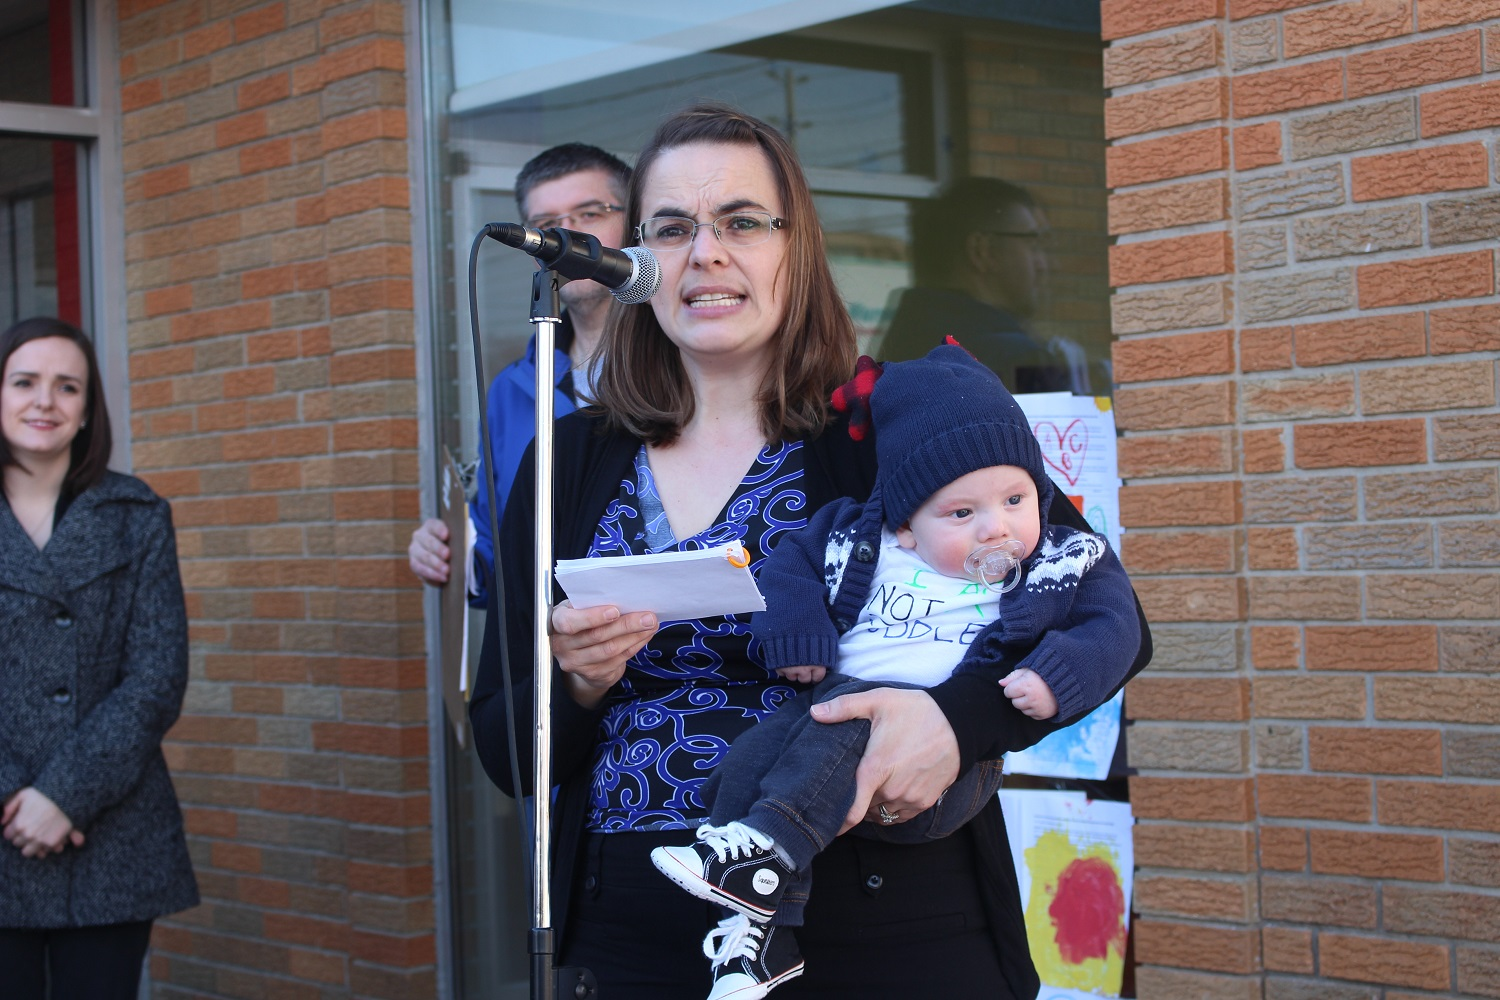 Registered Early Childhood Educators hold rally at ABC day Nursery in Windsor to voice opposition to proposed provincial child care regulations, March 17, 2016. (Photo by Maureen Revait)